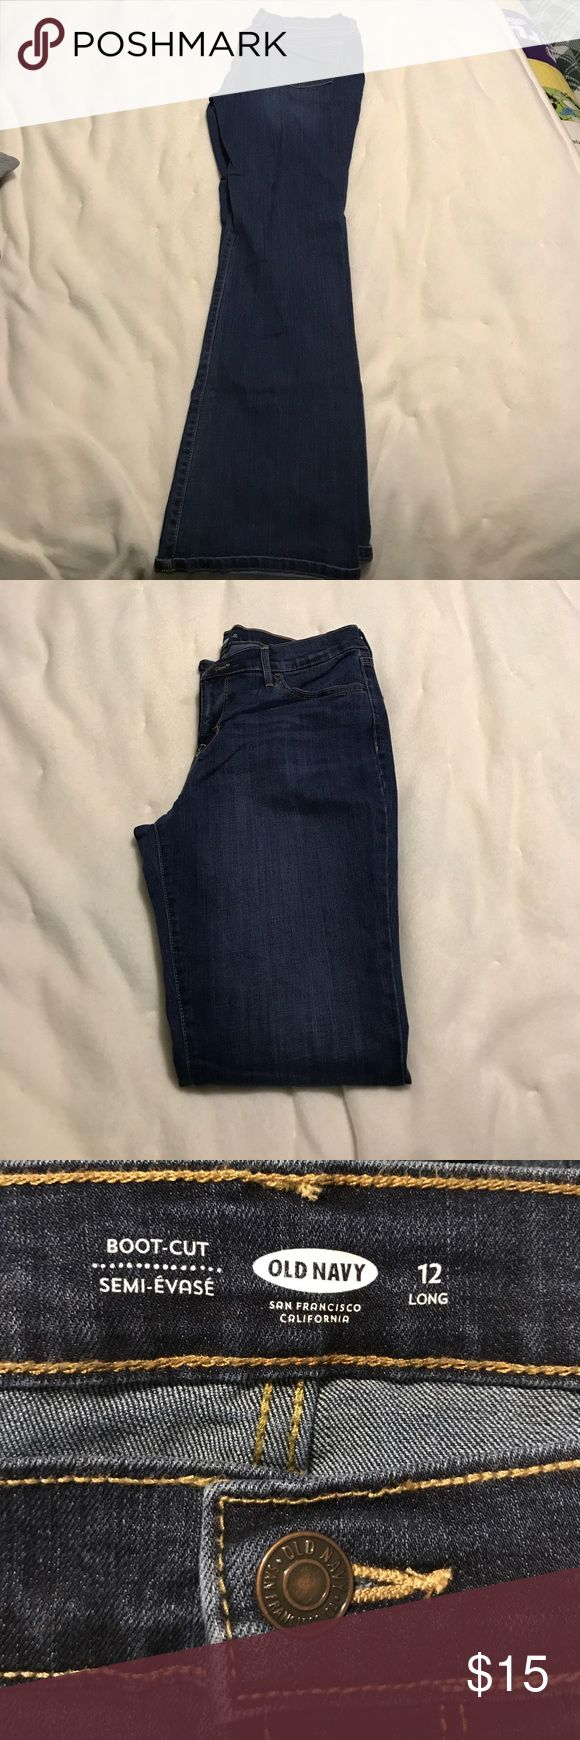 Old Navy Jeans Women's boot cut Old Navy jeans.  Size 12 long.  Worn only once. Old Navy Jeans Boot Cut